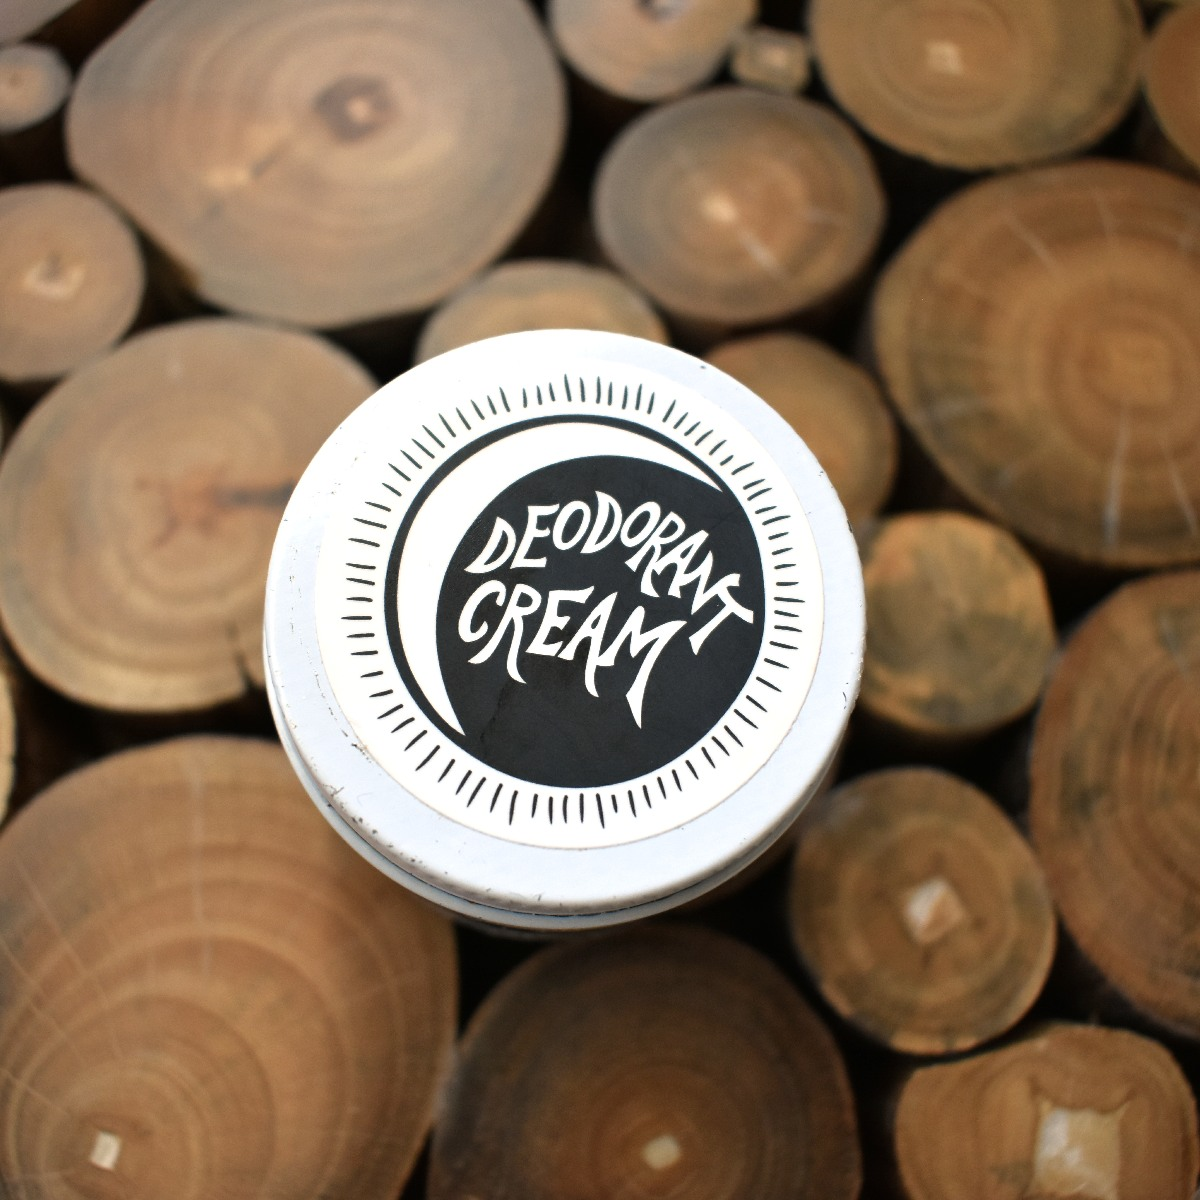 Fat & the Moon - A natural deodorant is somewhat hard to find, however this coconut based, aluminium free deo is one that I have found works (and lasts).You can find it online HERE for $12